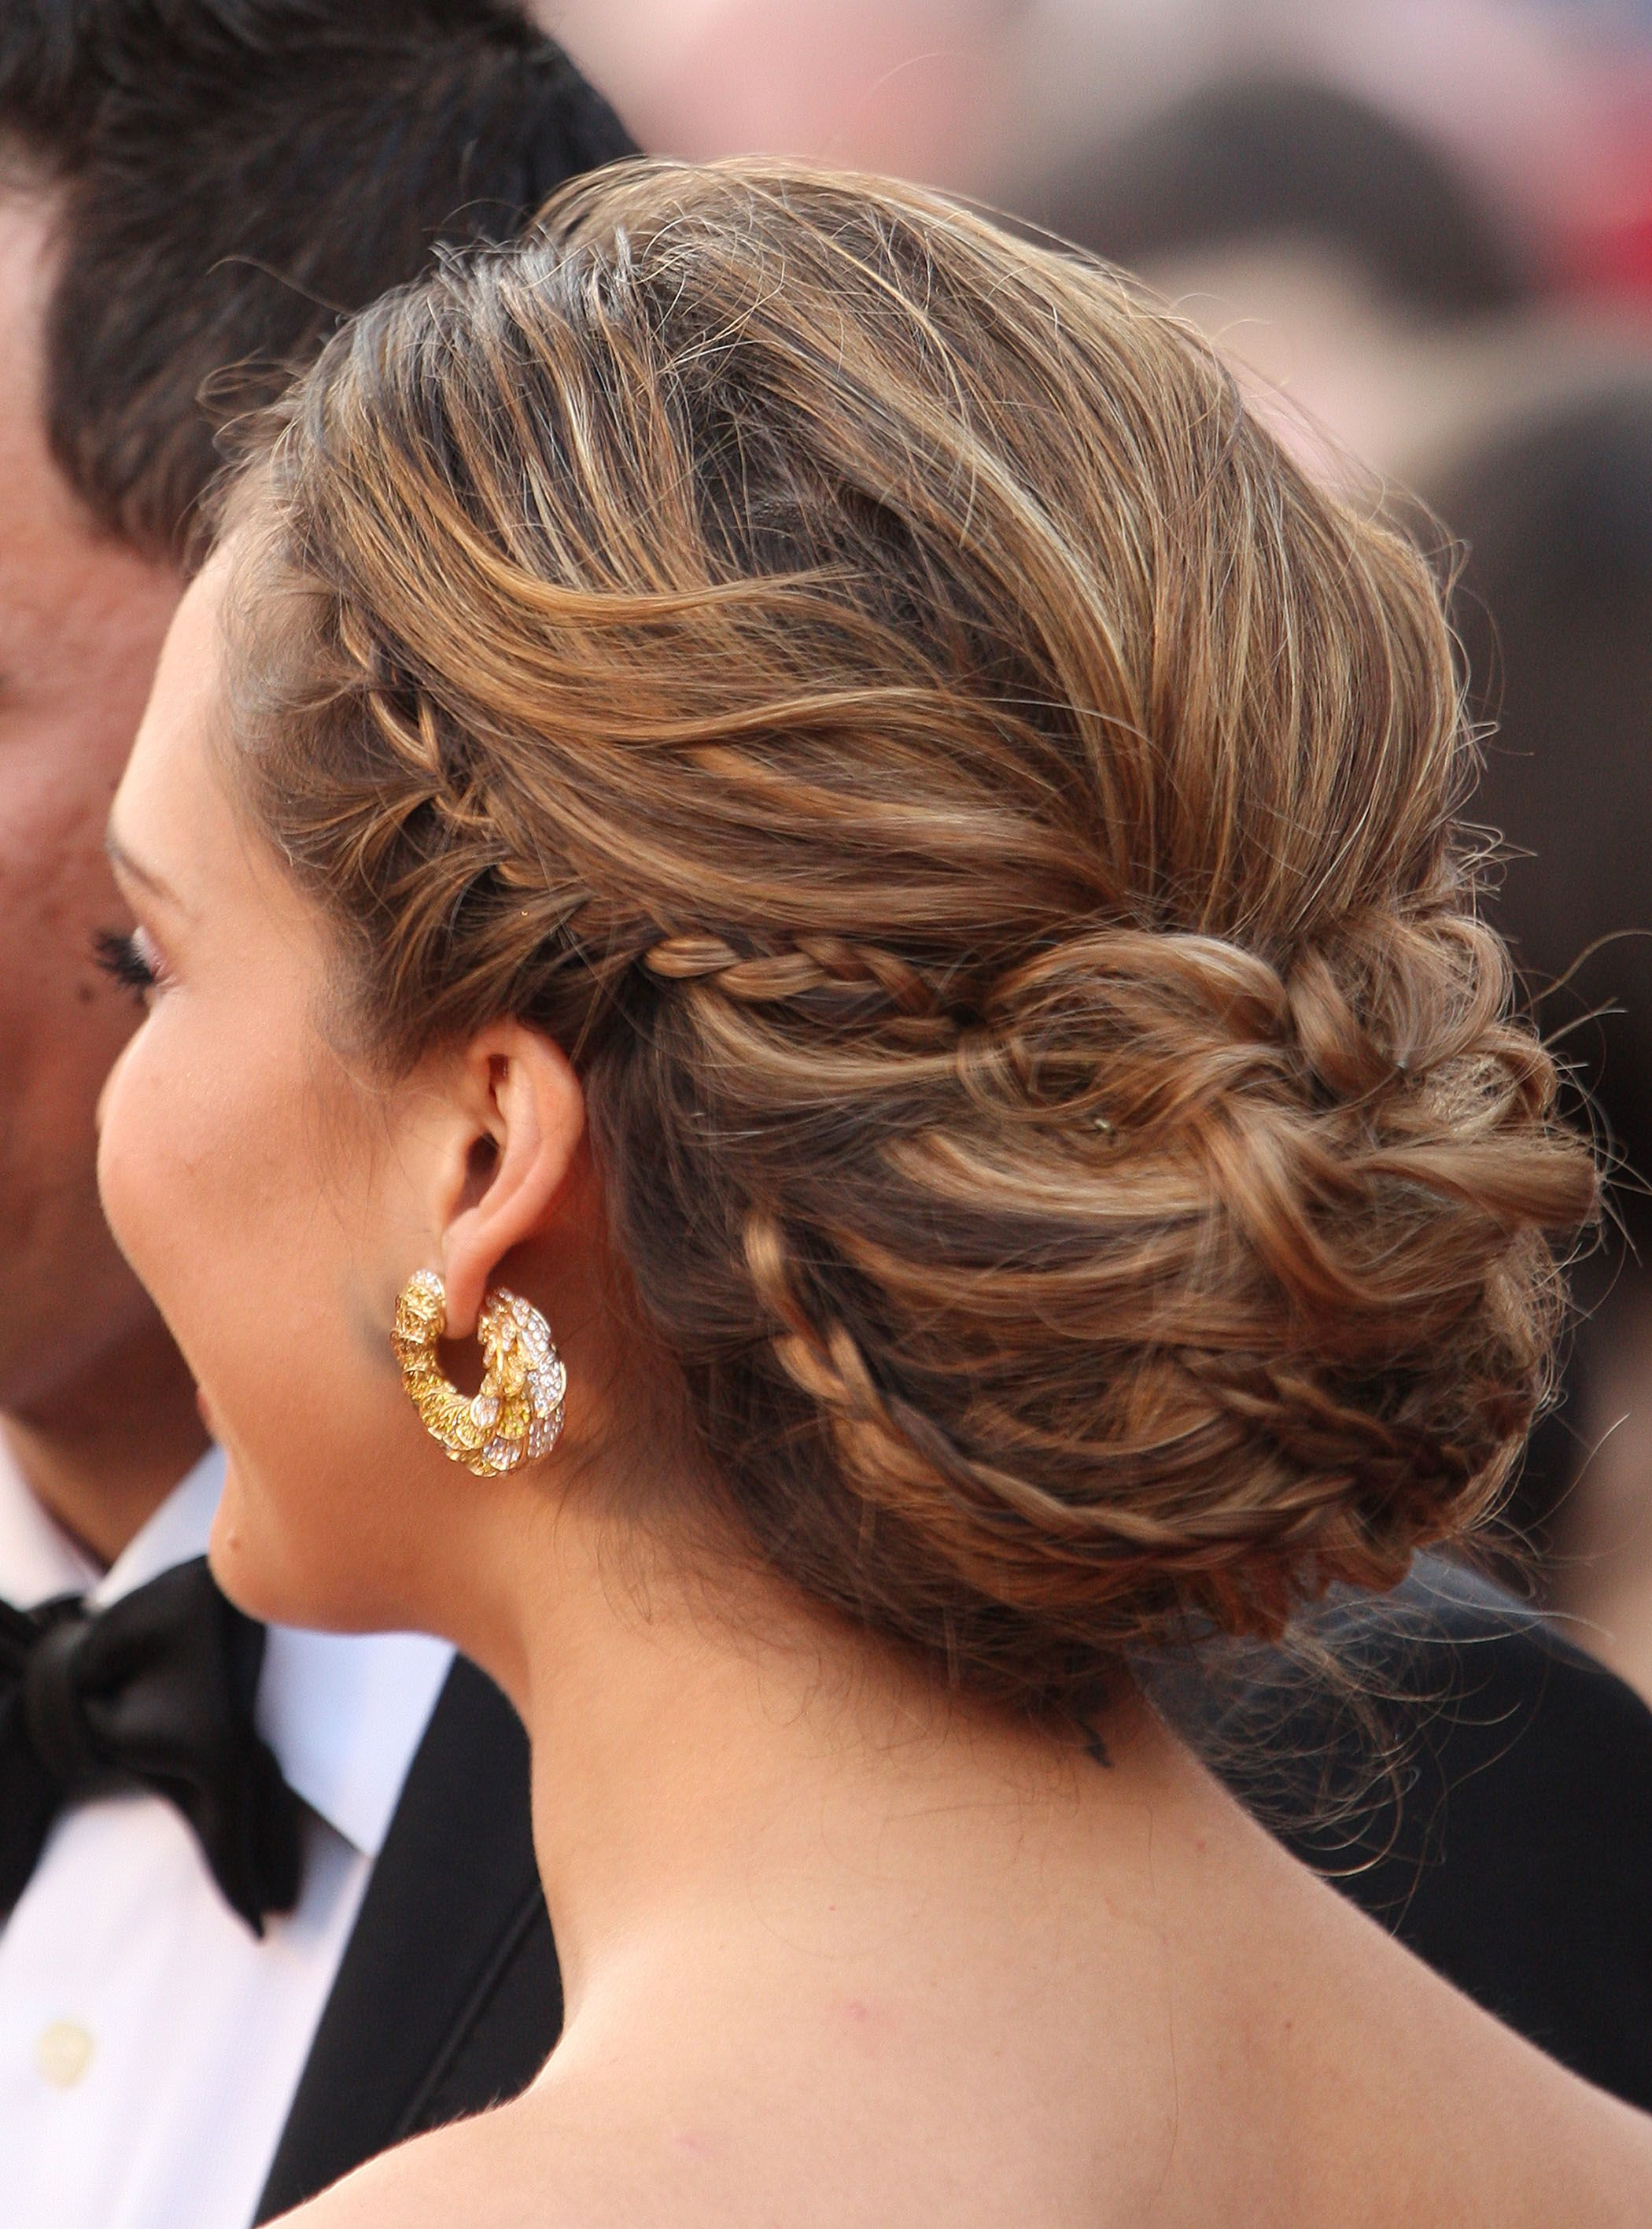 Red carpet celebrity photos jessica alba hair updo matrimonio e